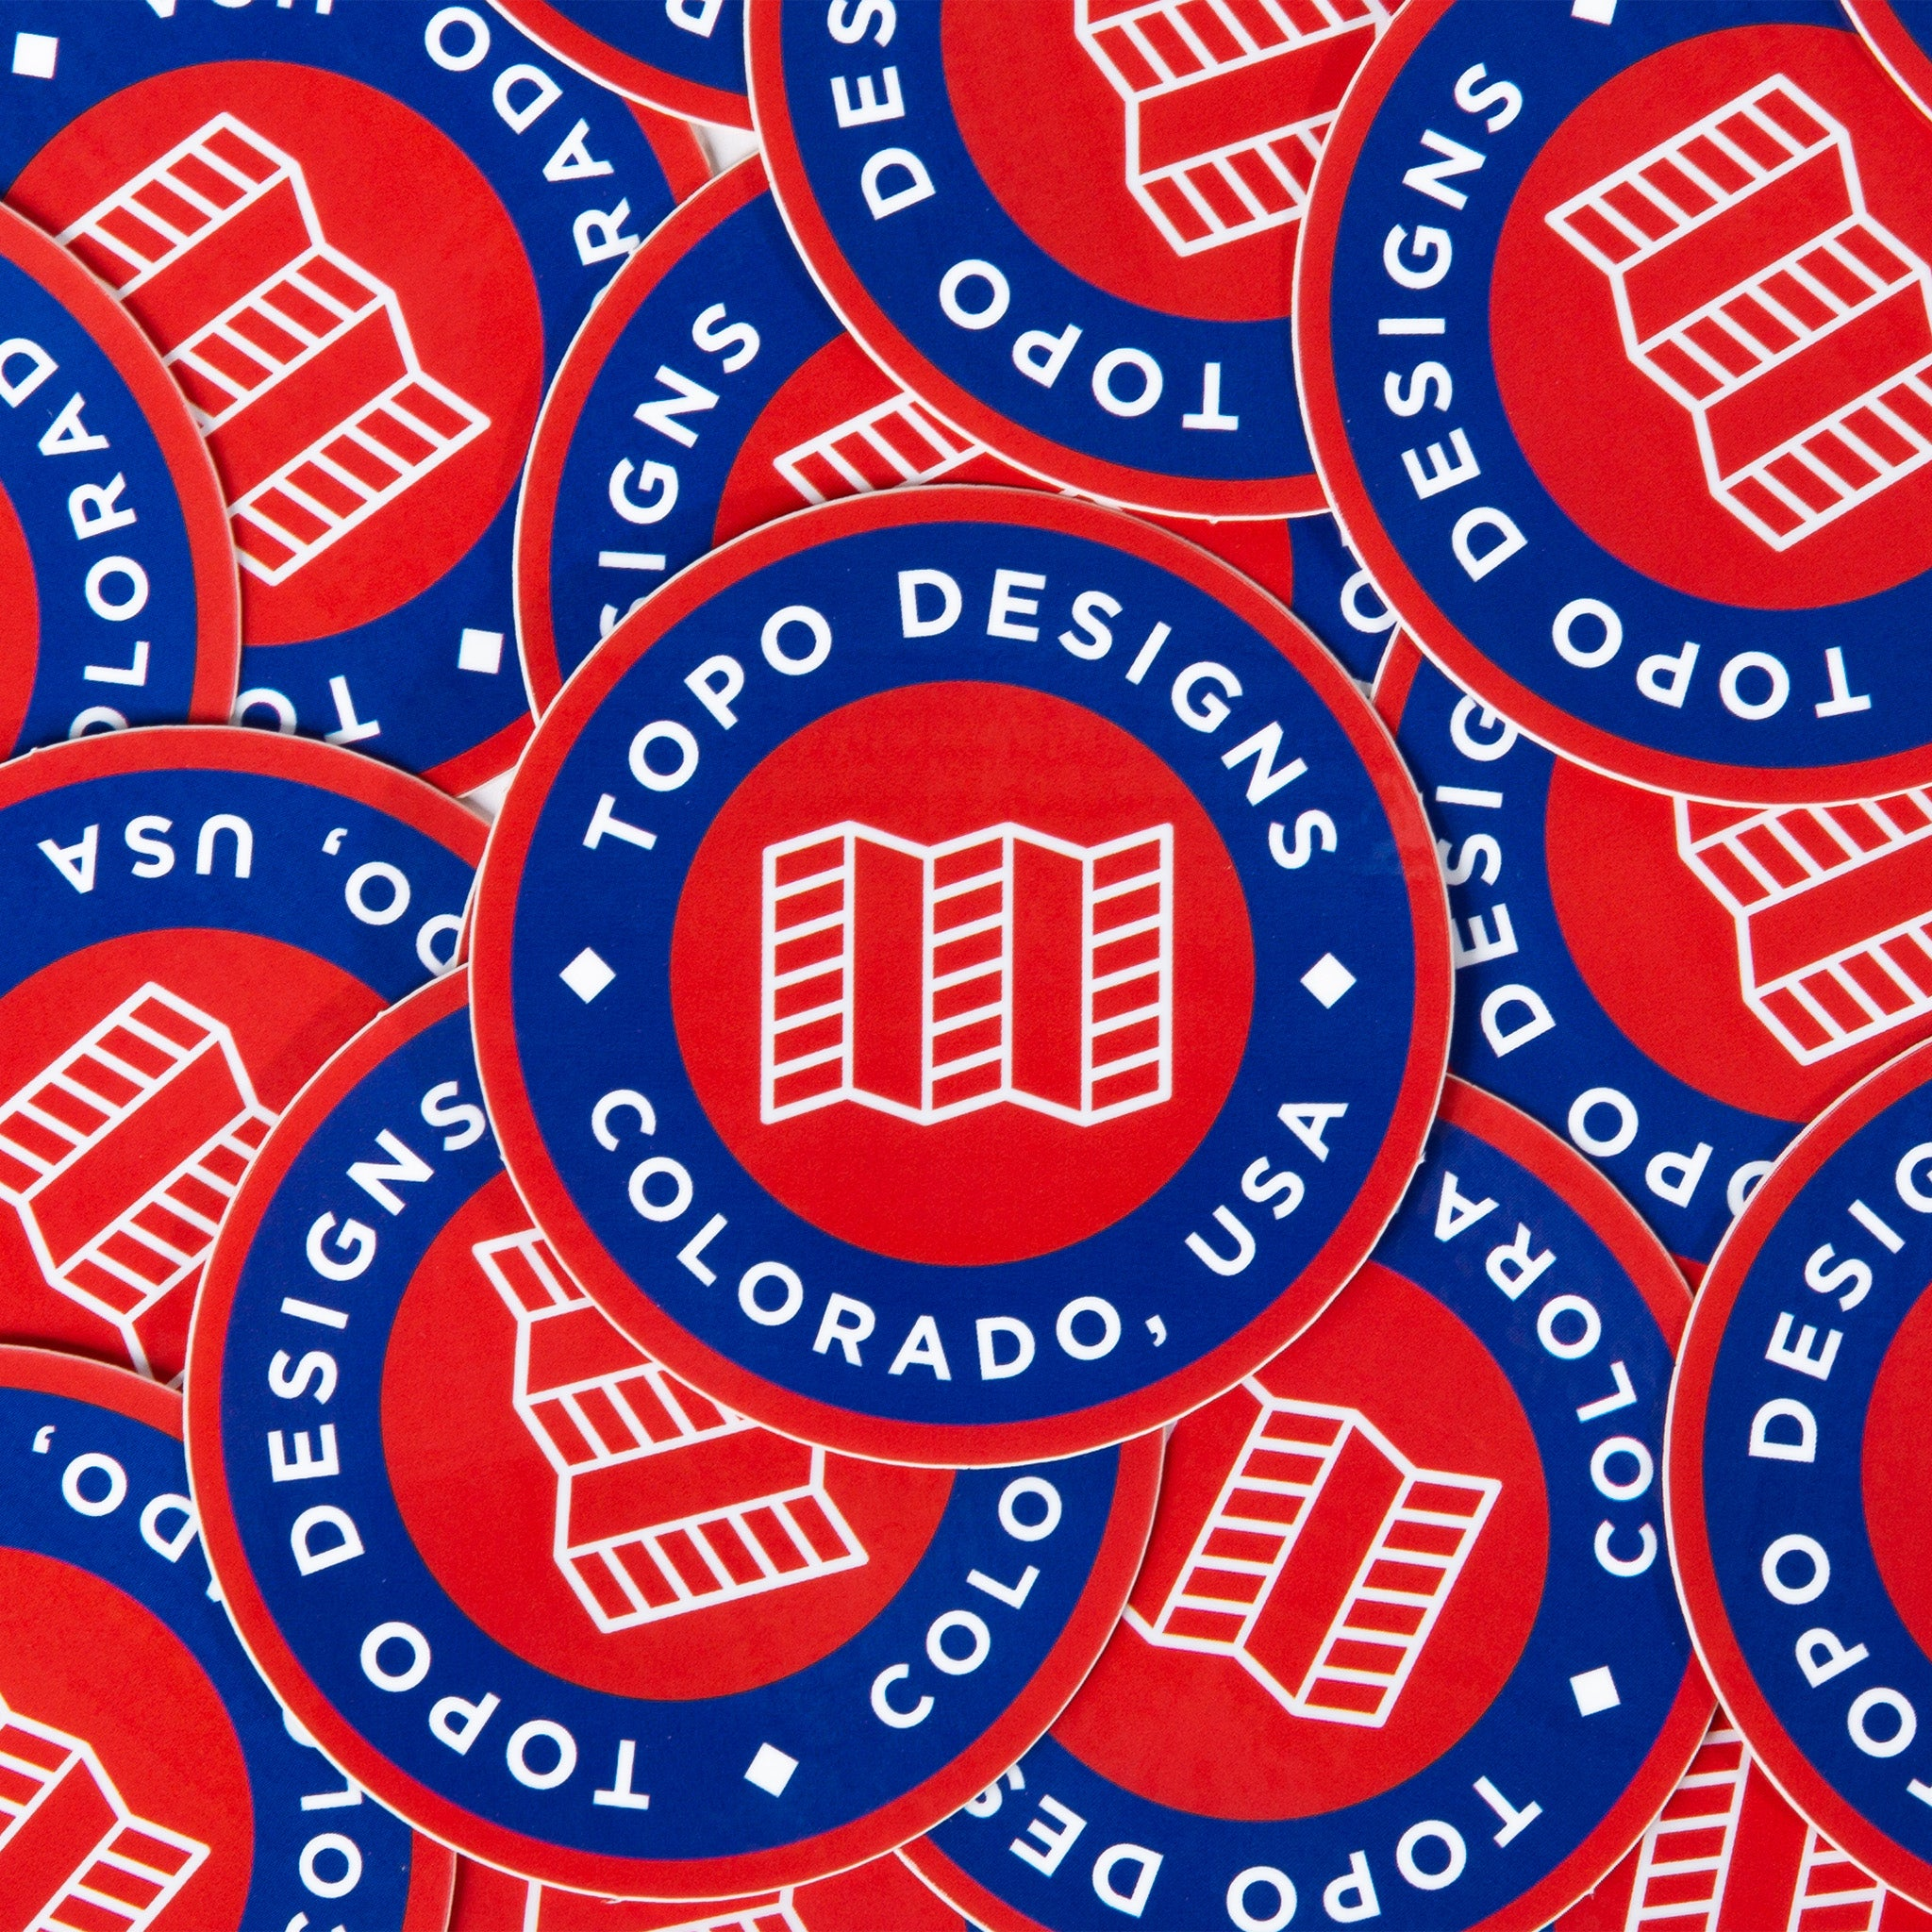 Topo designs sticker pack